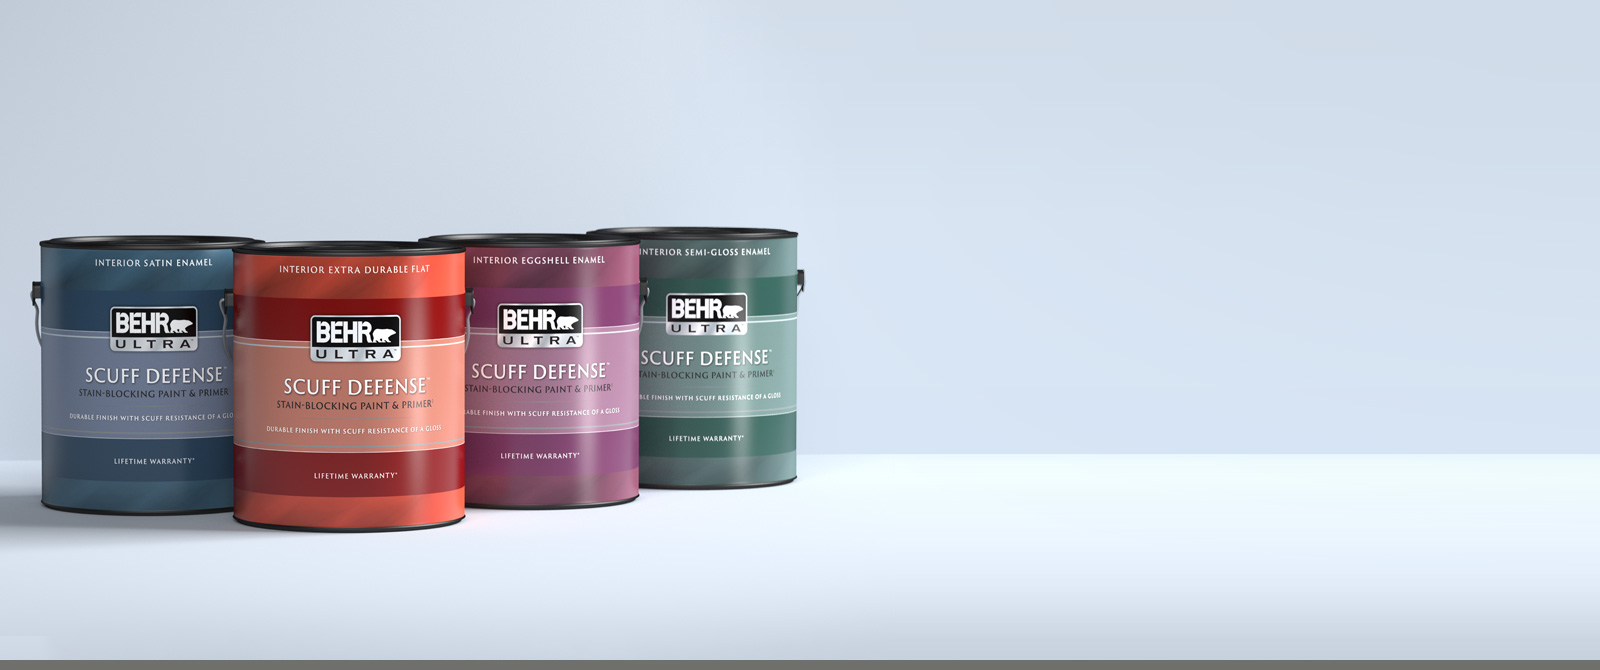 1 gallon can image of BEHR ULTRA SCUFF DEFENSE on a gray background.